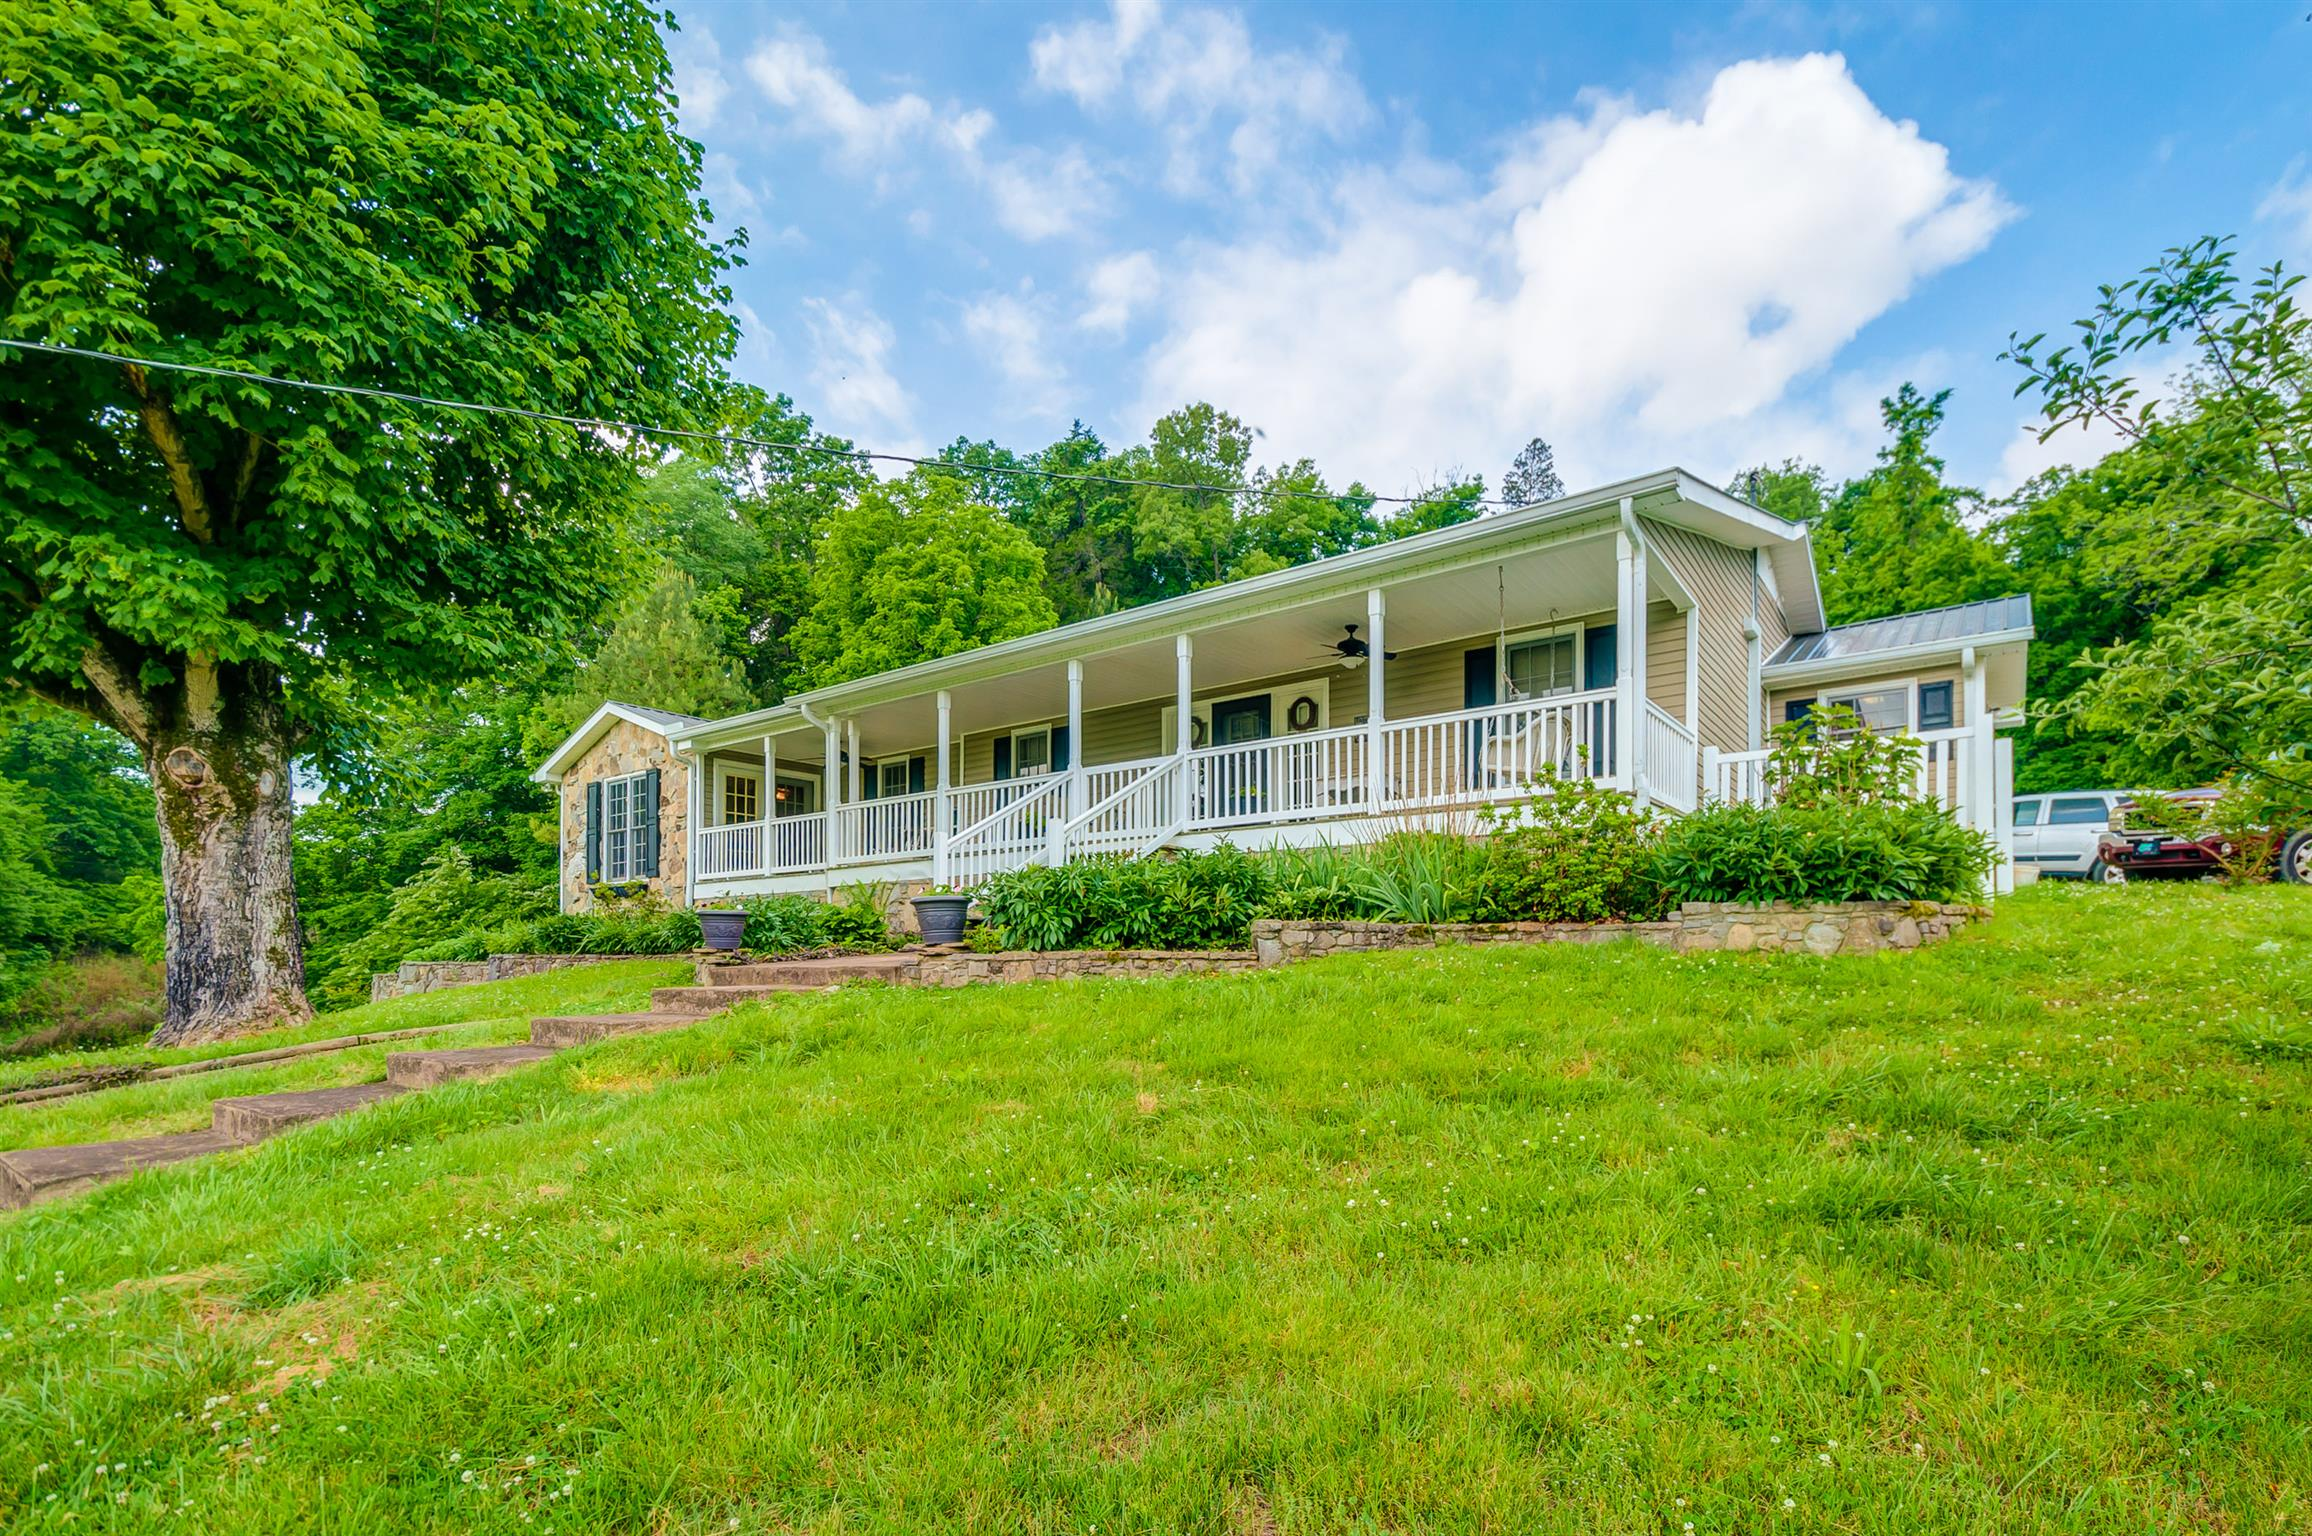 6752 Morgan Creek Rd, Centerville, TN 37033 - Centerville, TN real estate listing